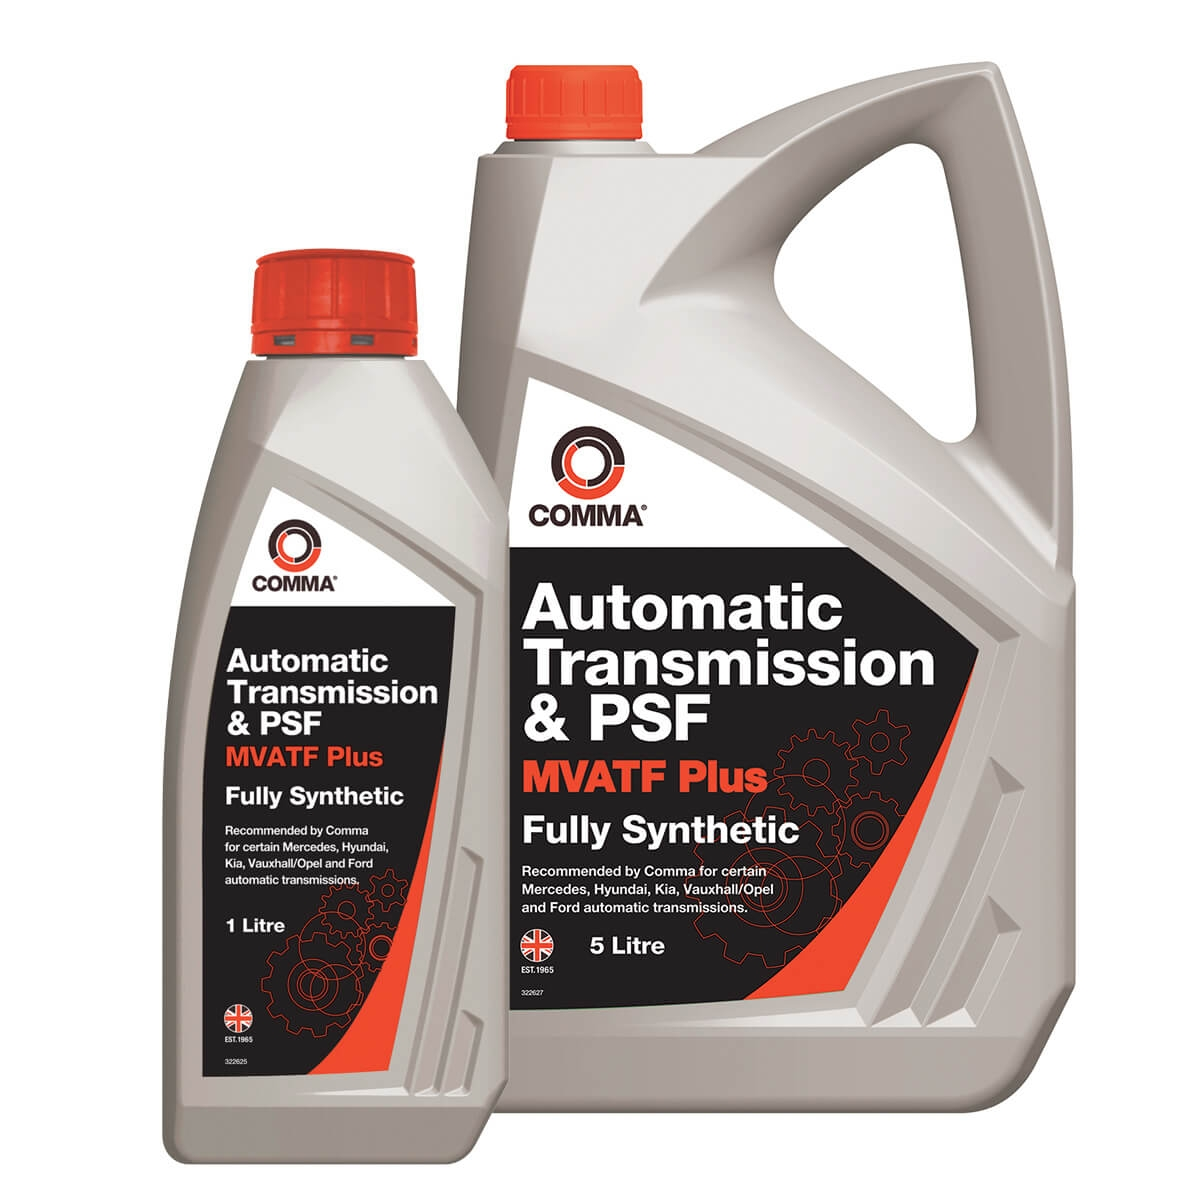 CITROEN C4 SPACETOURER Automatic Transmission Oil